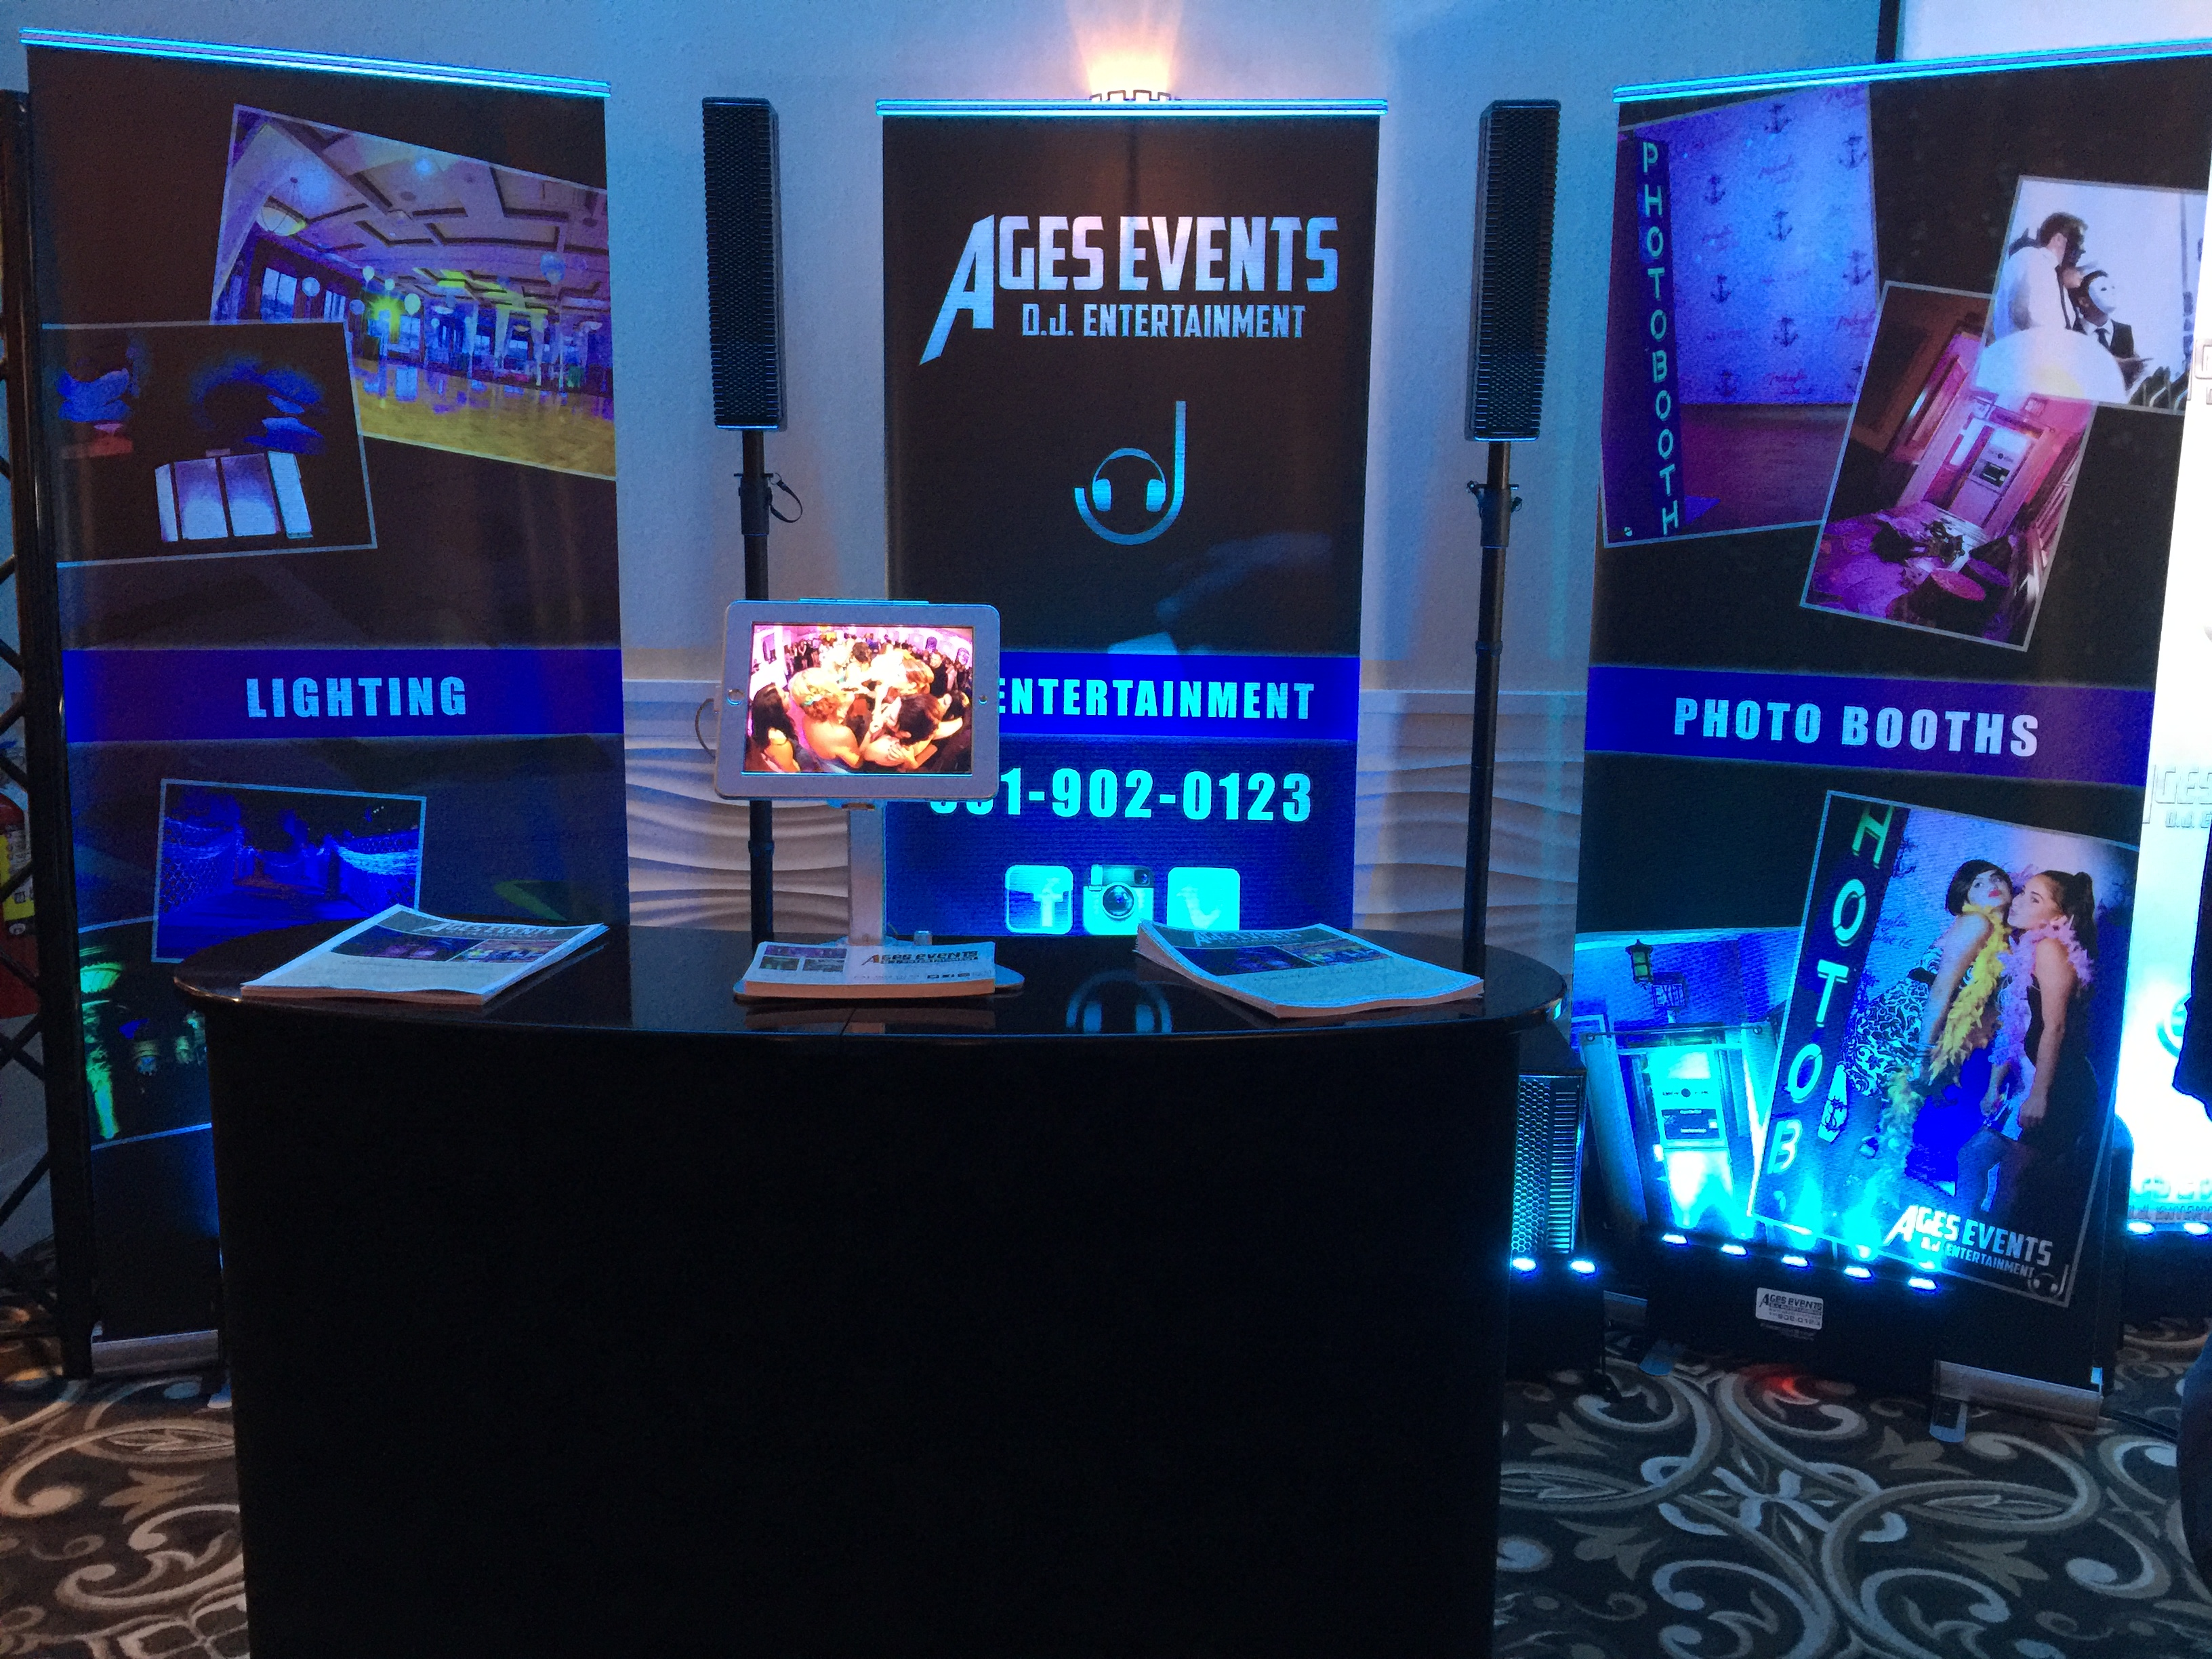 Retractable Banner Designs - AGES Events D.J Entertainment 2015.